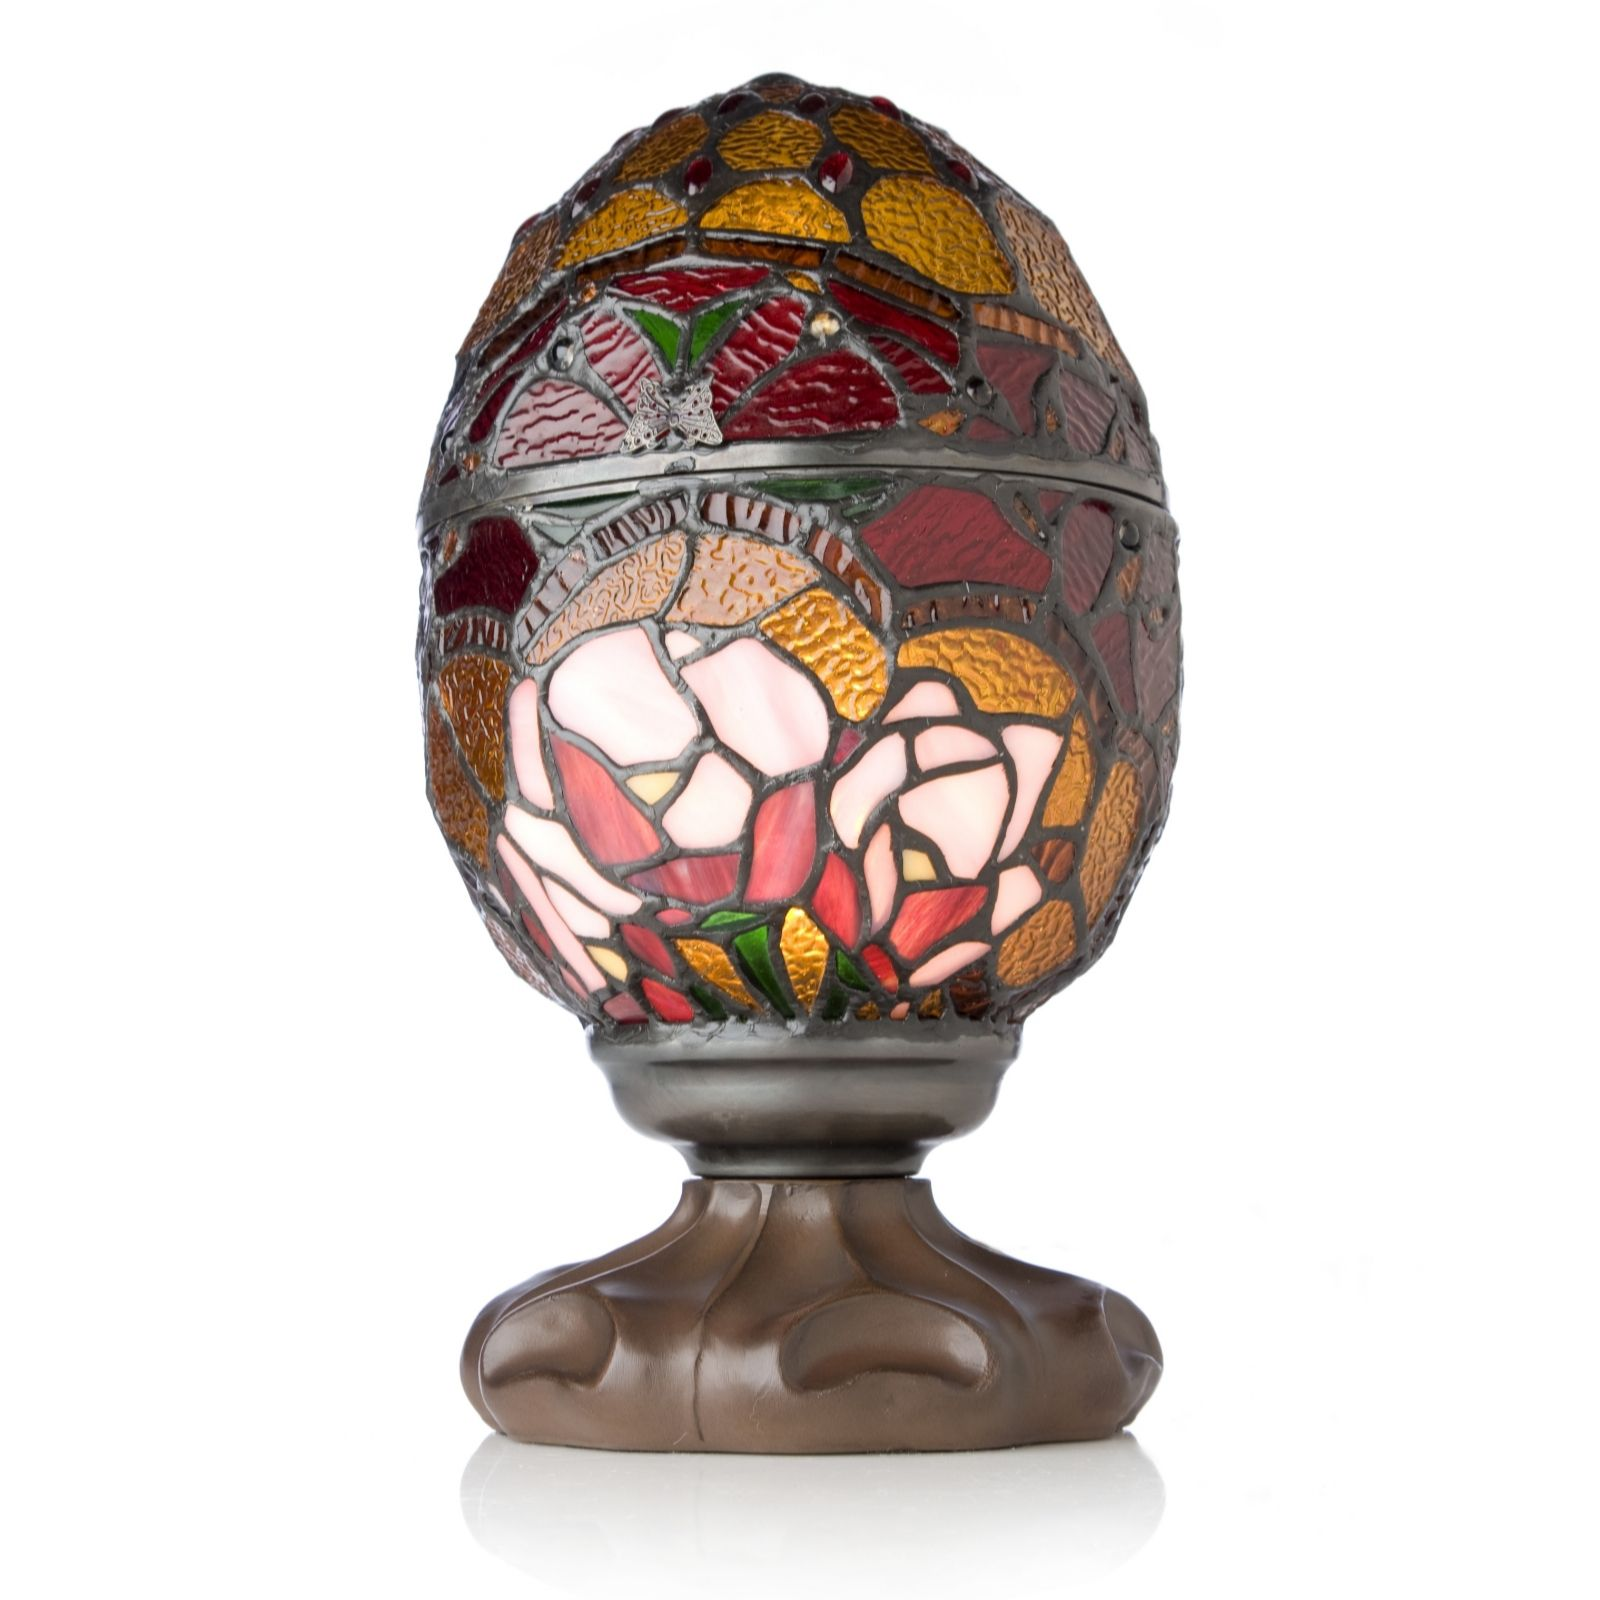 Tiffany Style Handcrafted Flower Orb Novelty Lamp   QVC UK